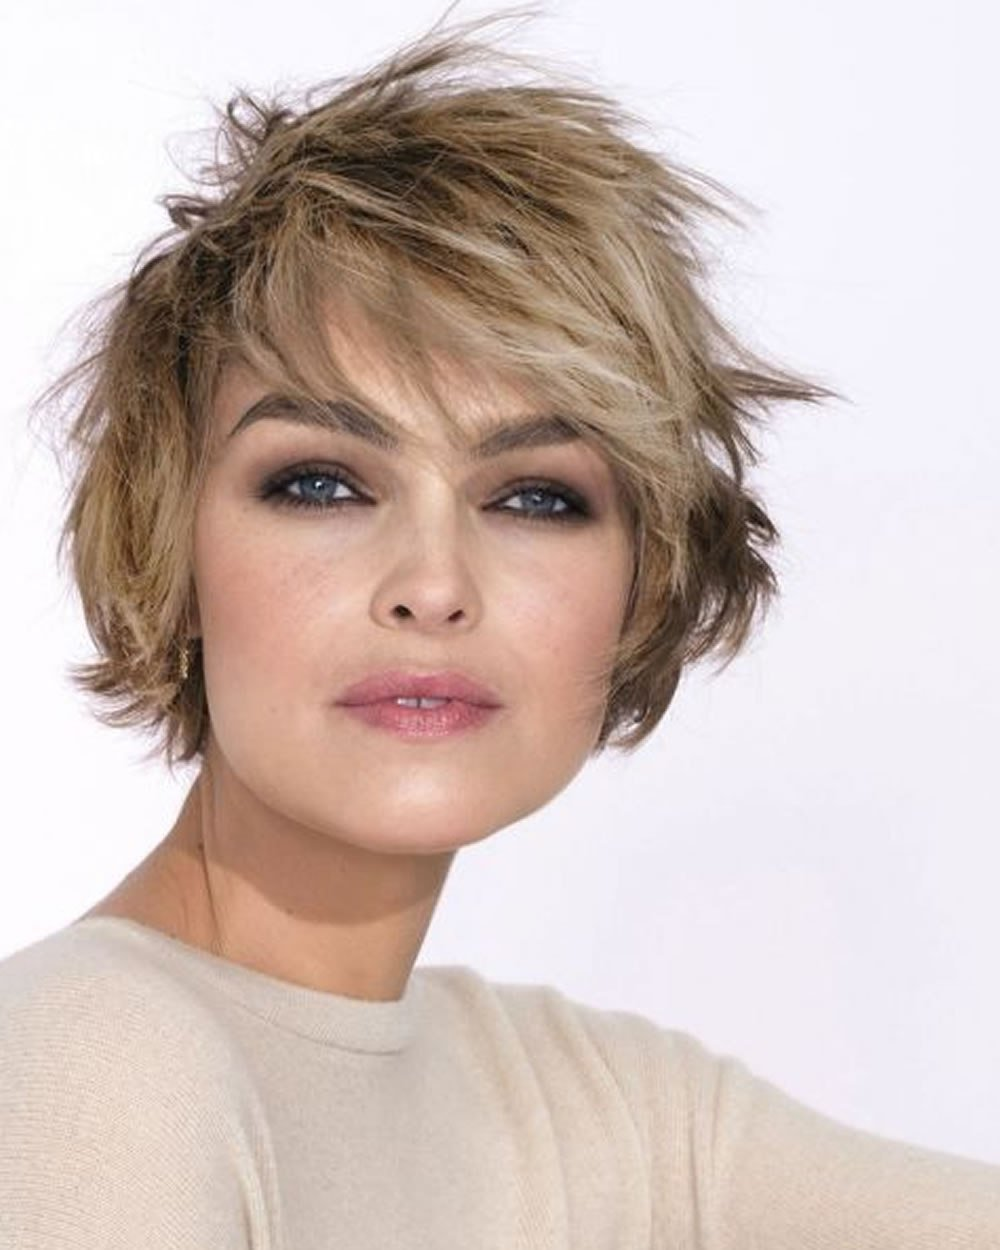 New Hey Ladies Best 13 Short Haircuts For Round Faces Ideas With Pictures